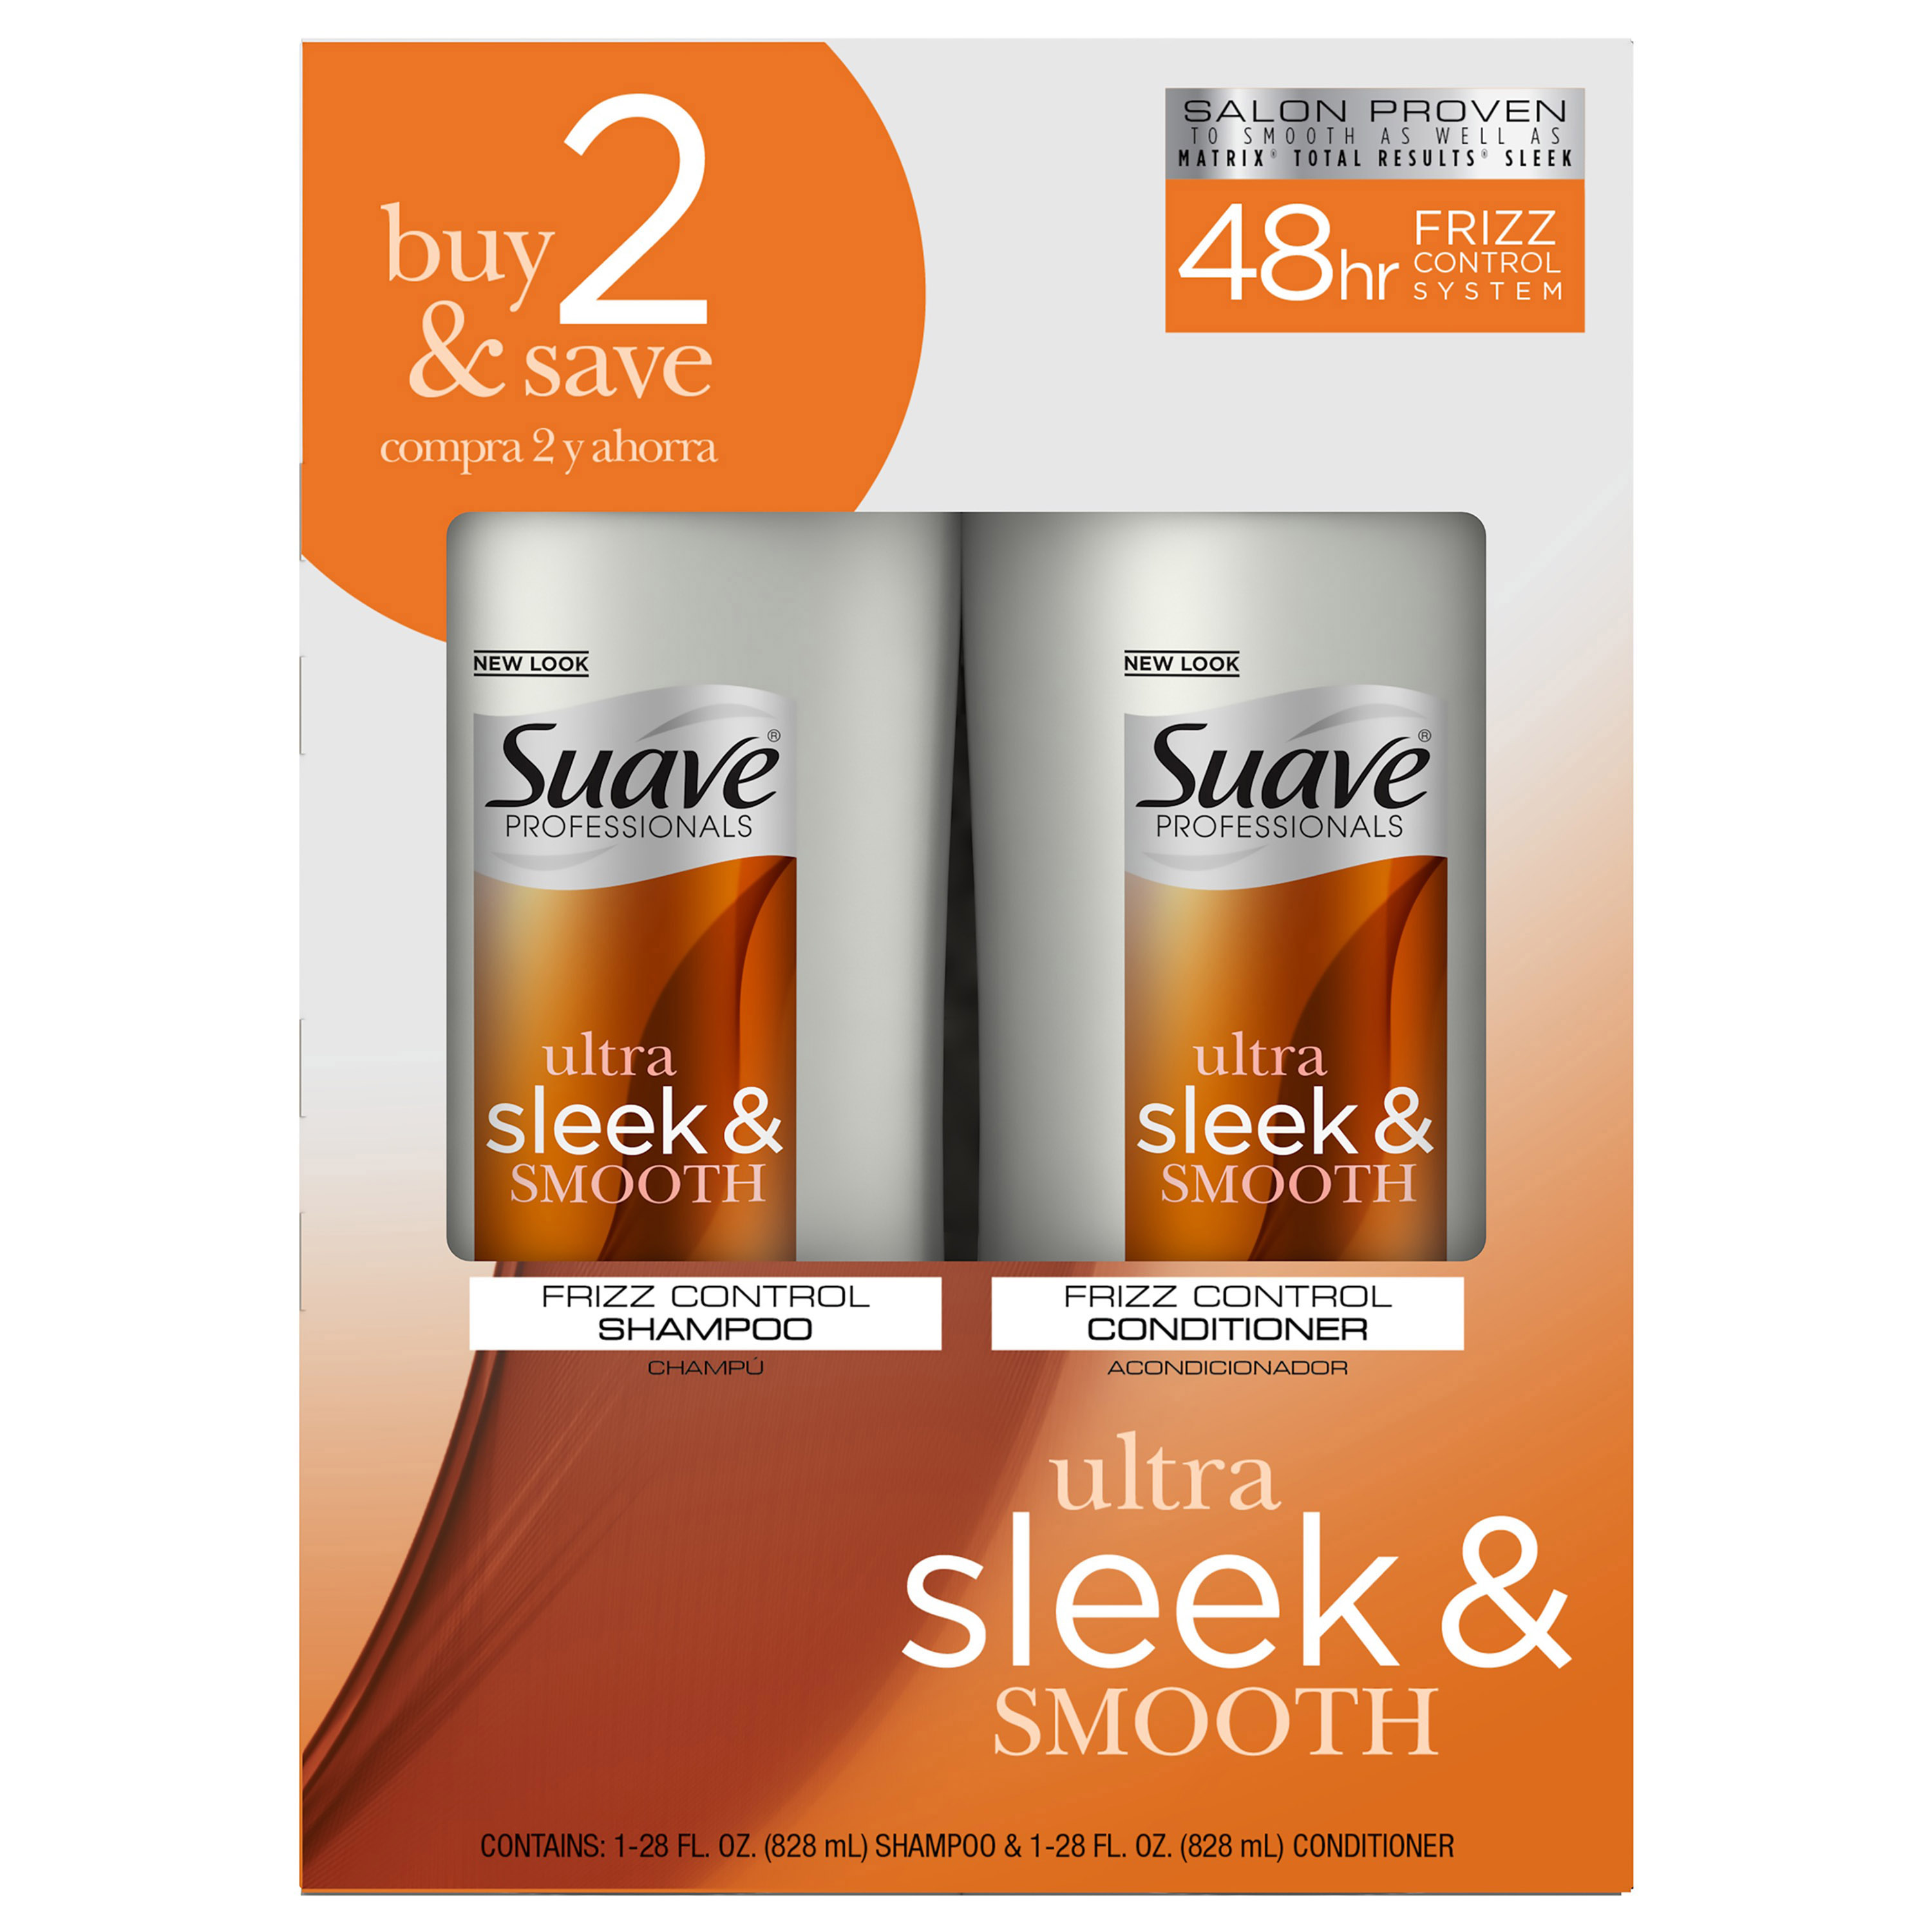 Suave Professionals Smooth and Sleek Anti Frizz Shampoo and Conditioner for Dry Hair, 28 oz, 2 count